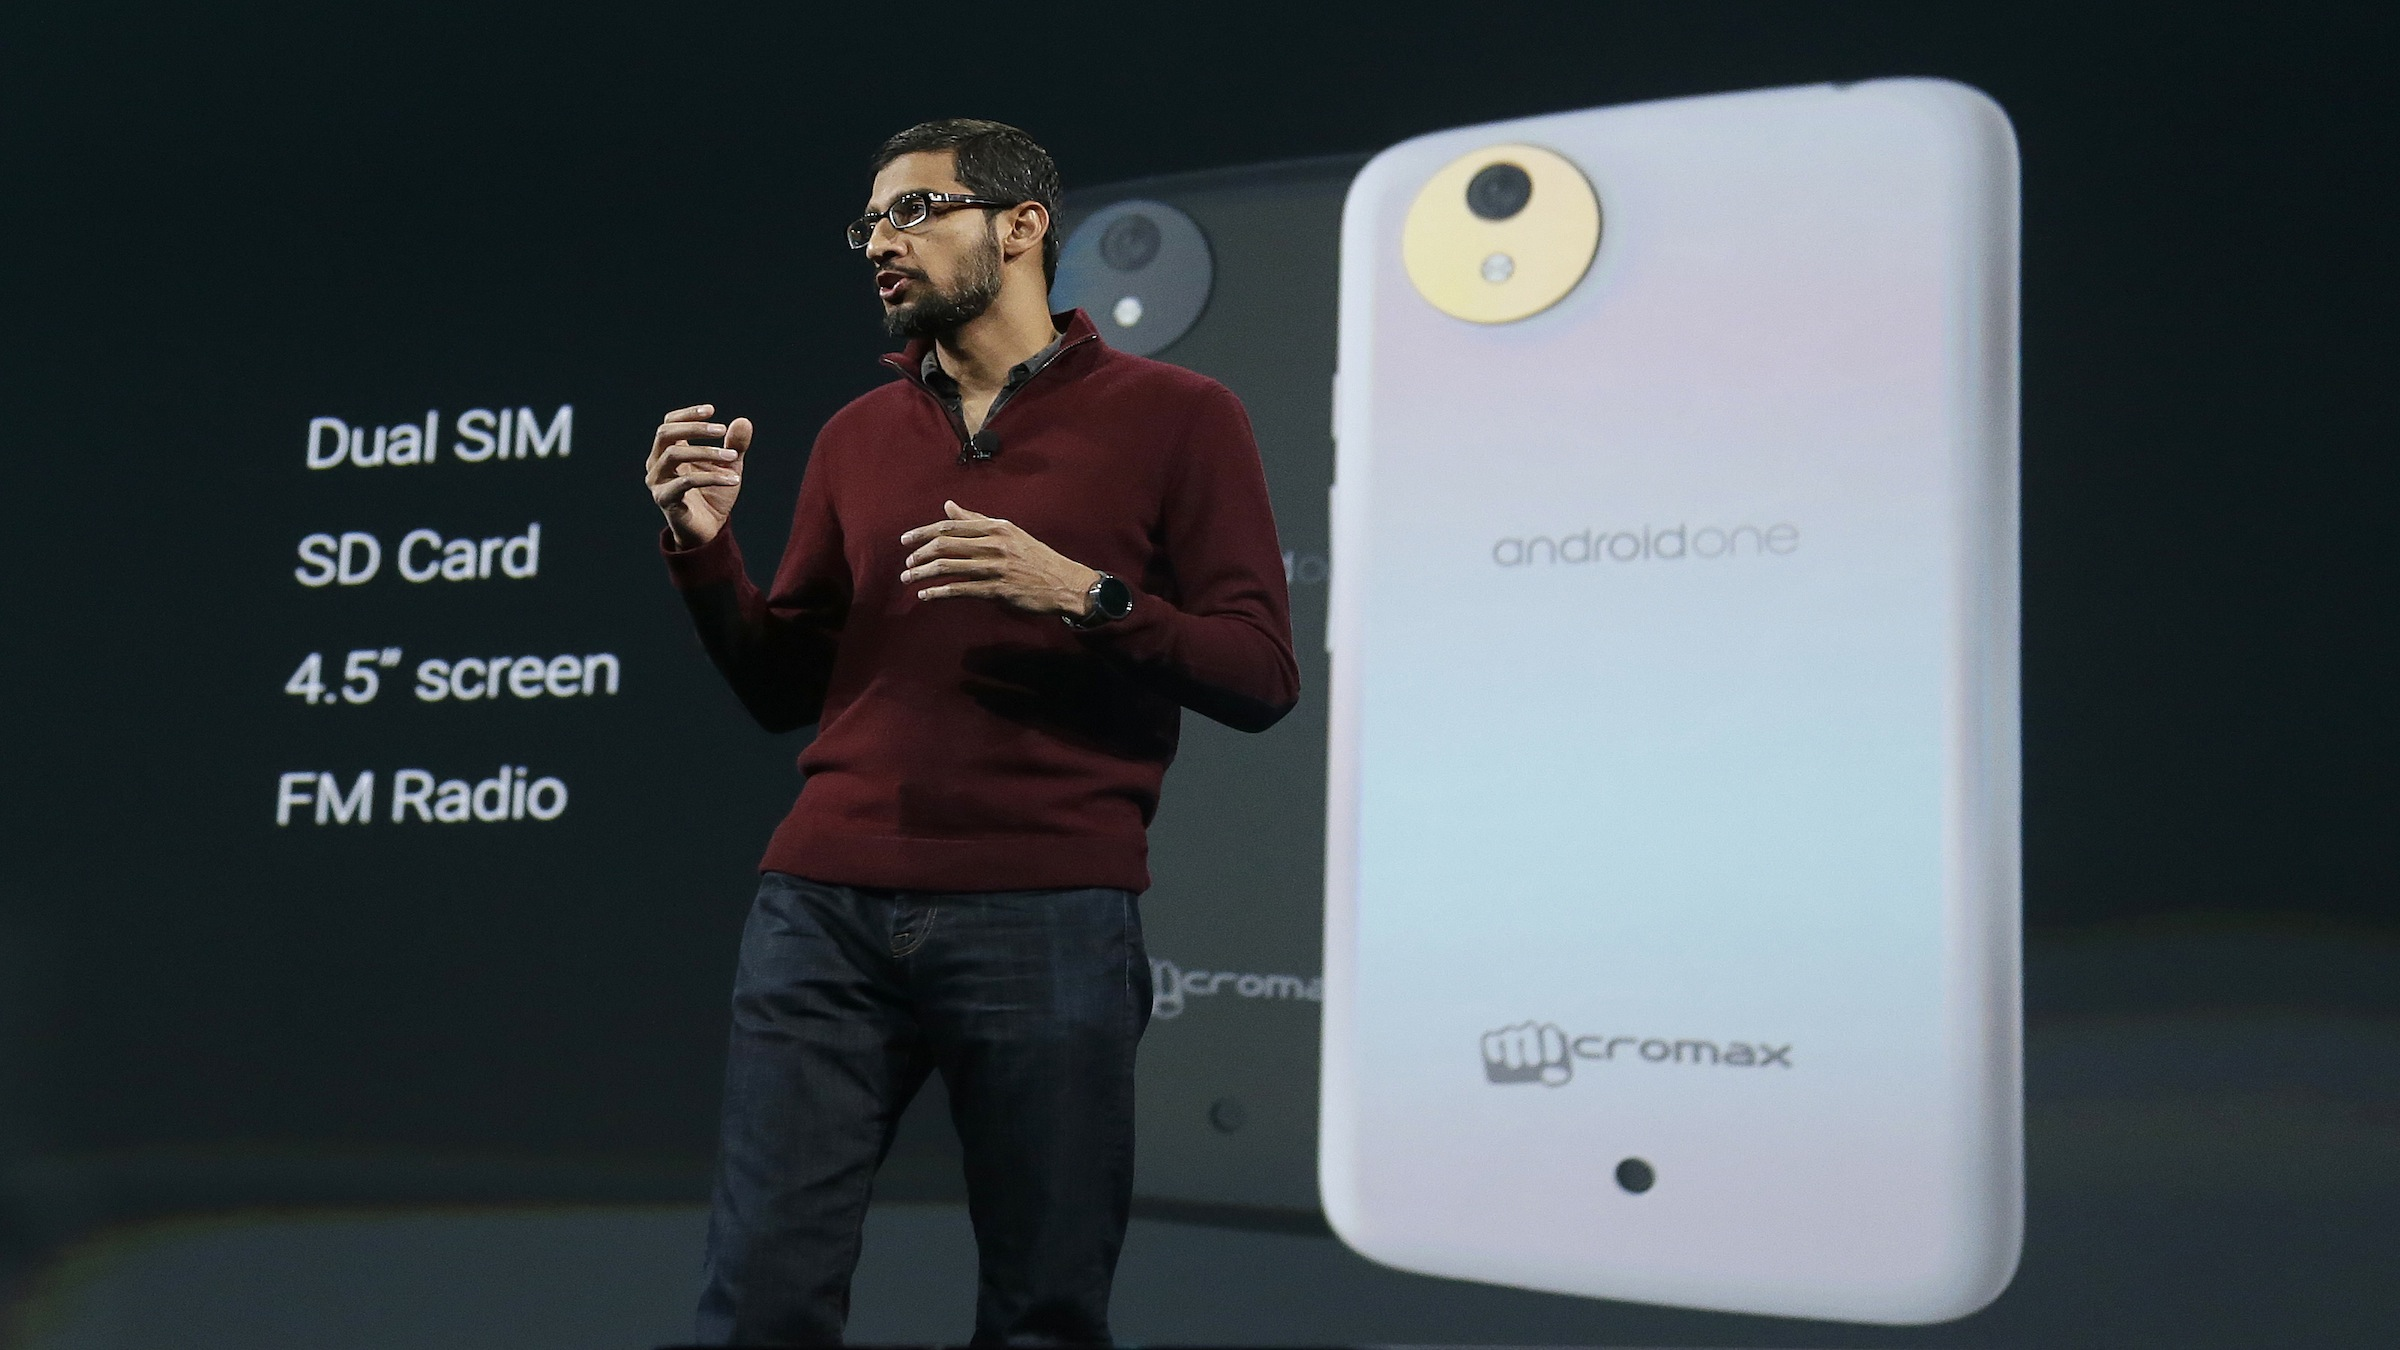 Sundar Pichai, senior vice president of Android, Chrome and Apps, speaks about the Android One phone during the Google I/O 2014 keynote presentation in San Francisco, Wednesday, June 25, 2014. As the Internet giant's Android operating system stretches into cars, homes and smartwatches, this year's annual confab will expand on its usual focus on smartphones and tablets. (AP Photo/Jeff Chiu)